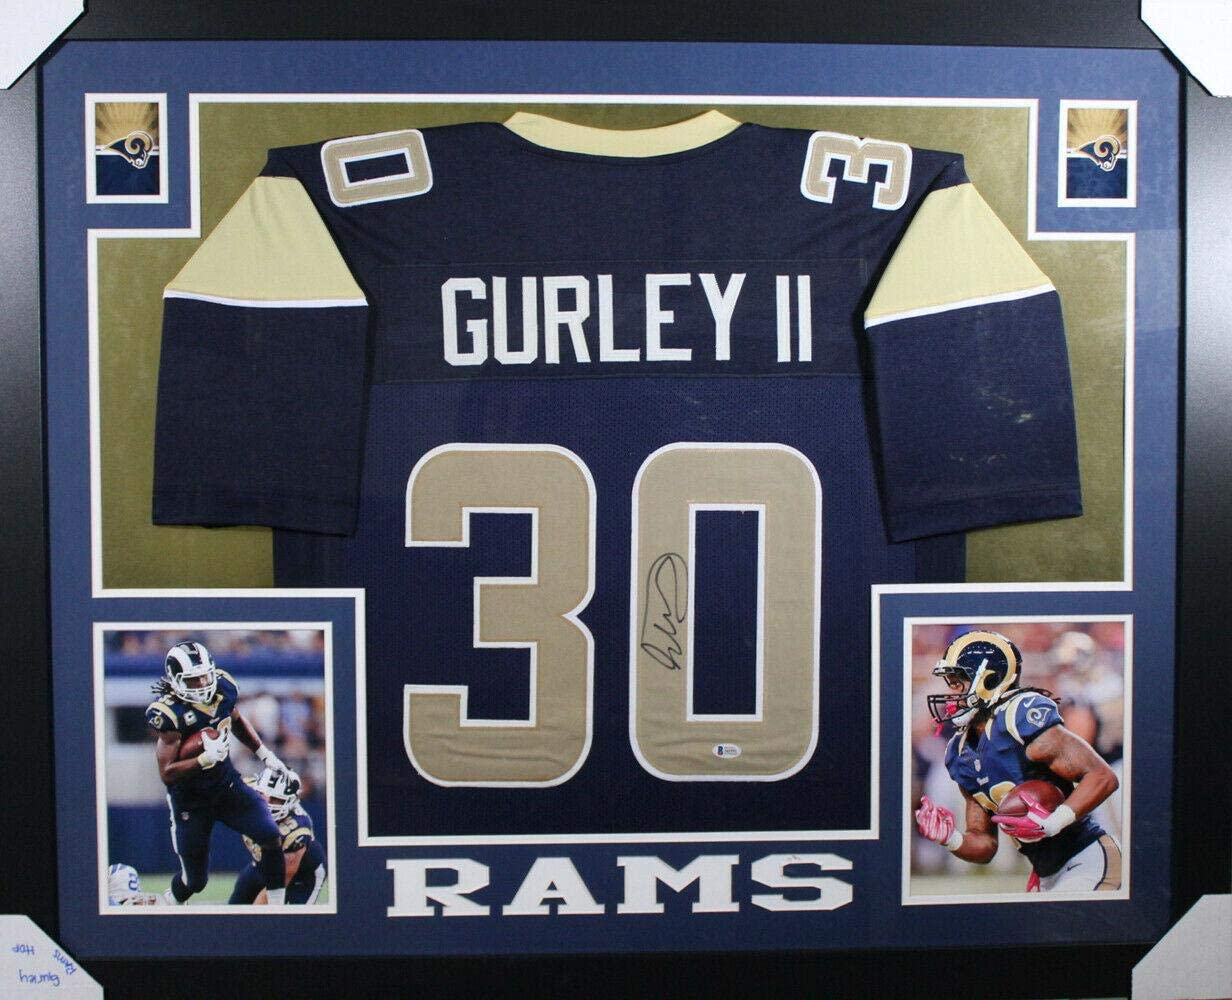 Todd Gurley Autographed Los Angeles Rams Framed Blue XL Jersey BAS 11014 - Autographed NFL Jerseys